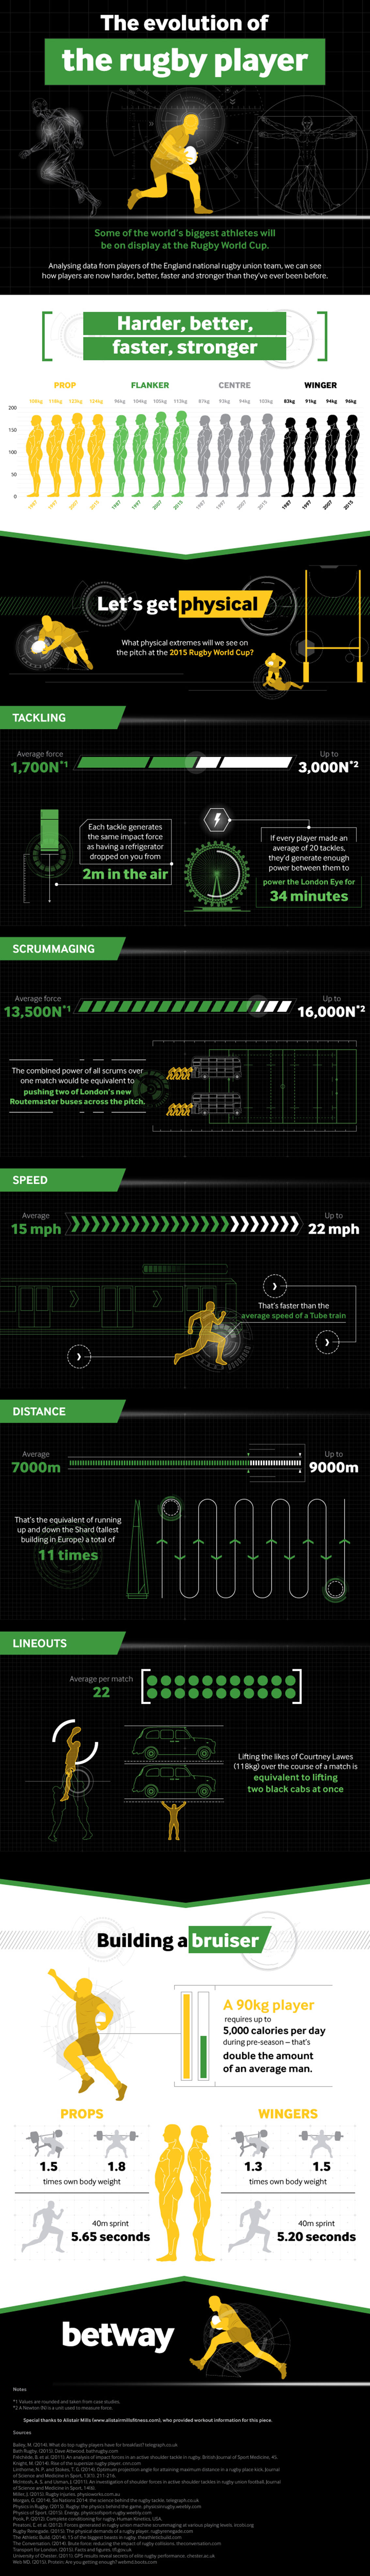 Evolution of a Modern Rugby Player Sports infographic